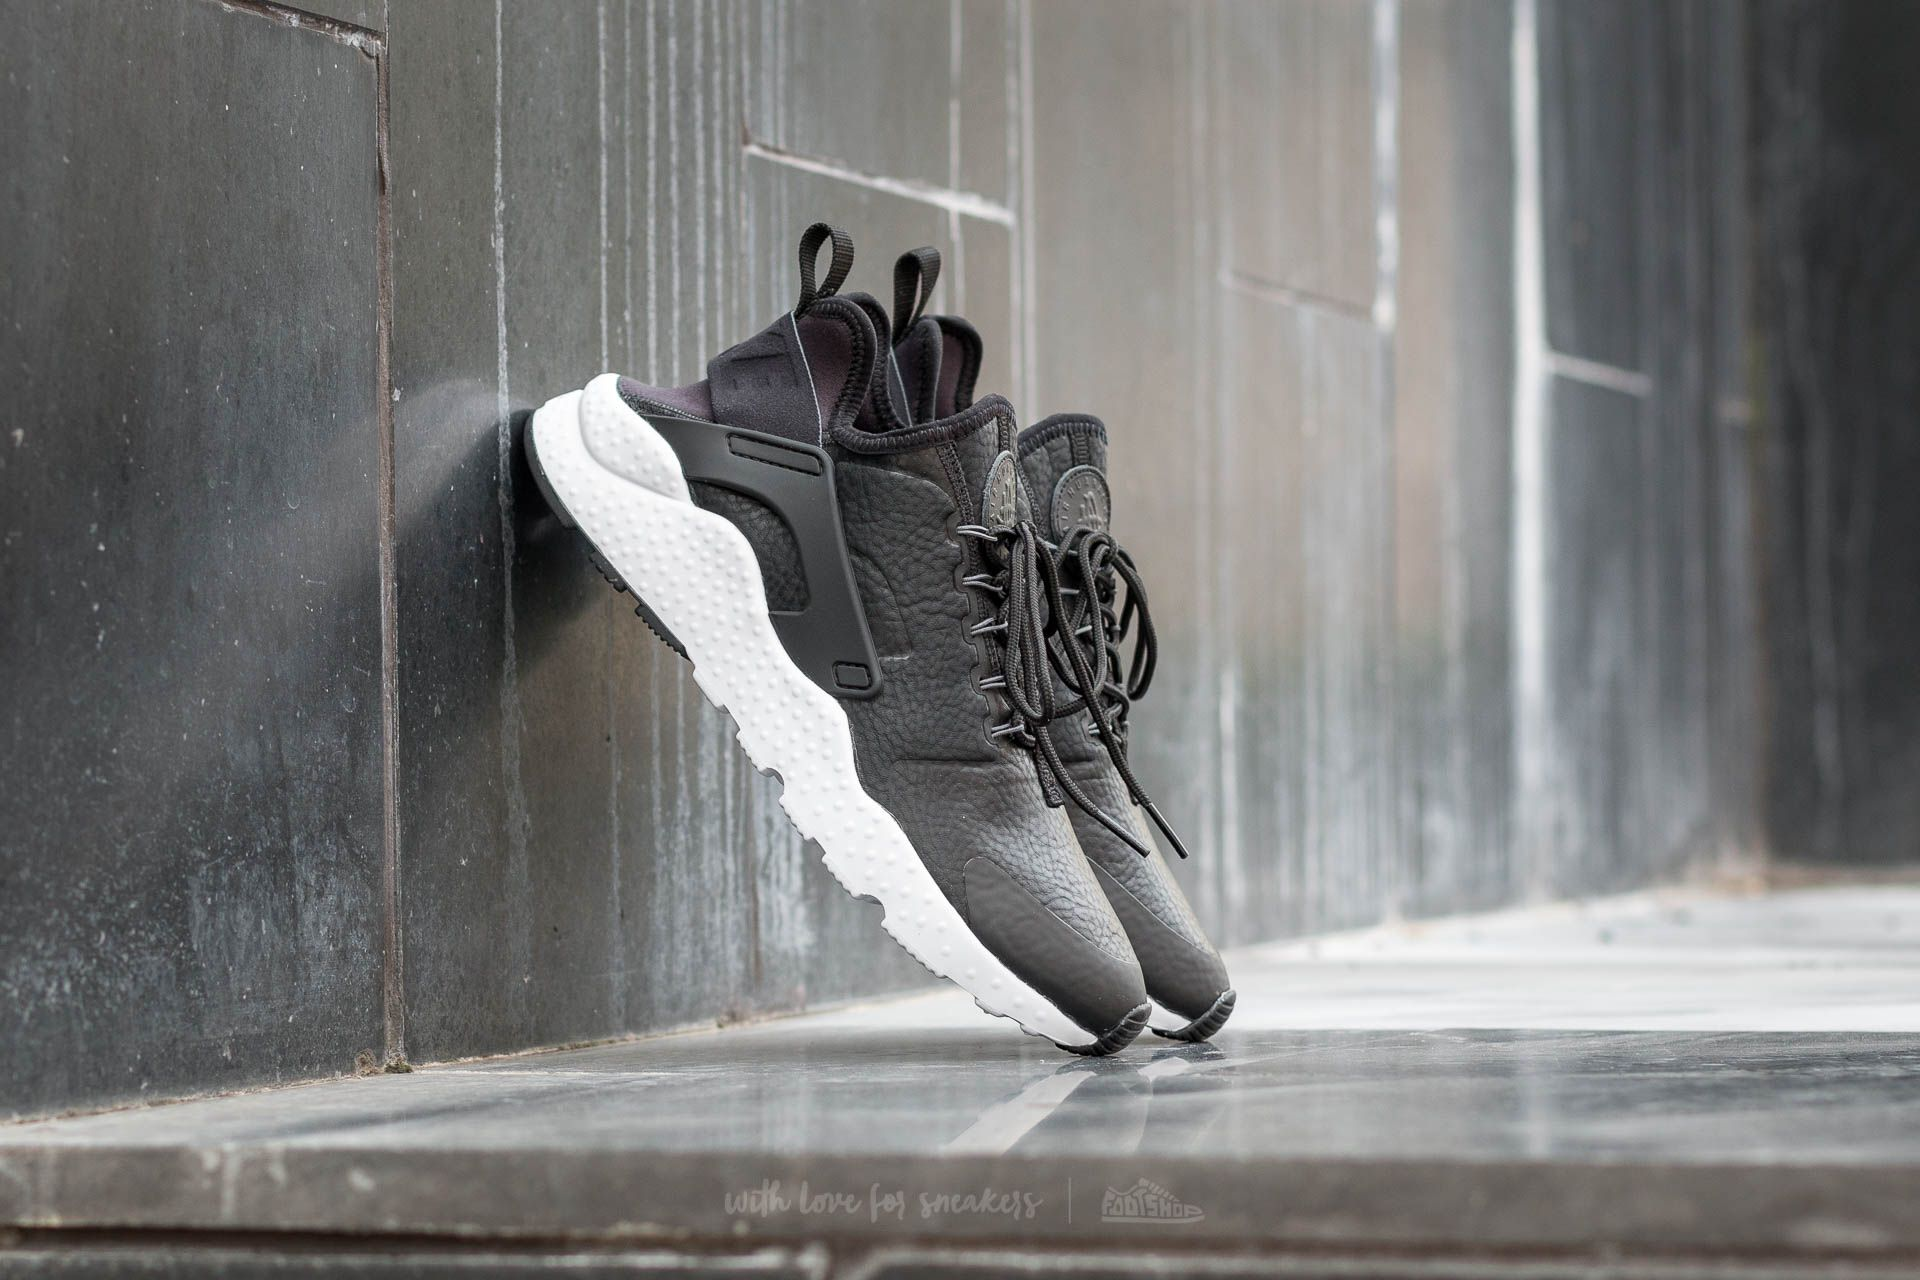 c60d42f55a01 Nike W Air Huarache Run Ultra Premium Black  Dark Grey-White ...